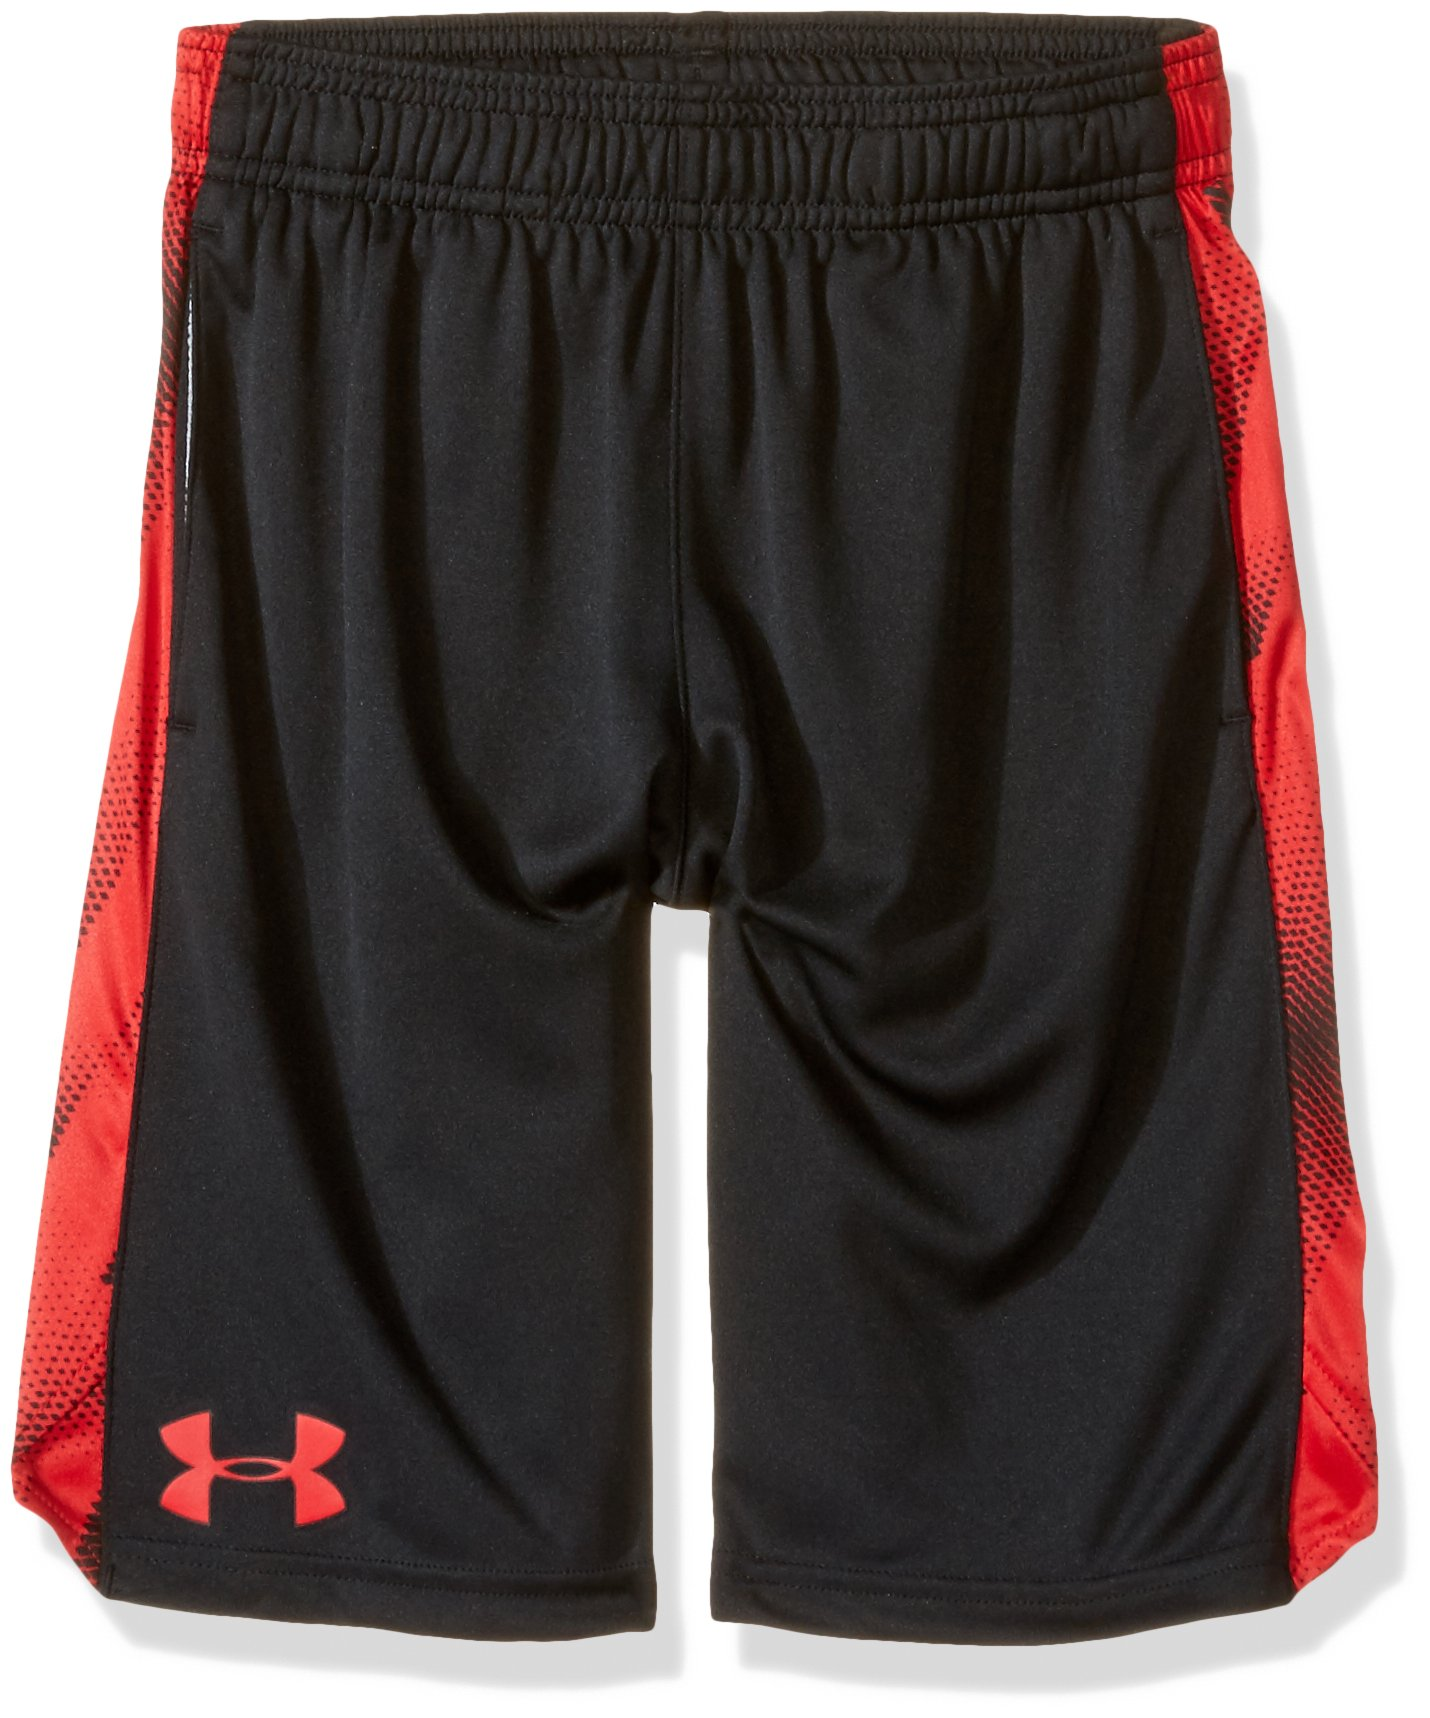 Under Armour Boys' Eliminator Printed Shorts, Black (004)/Red, Youth X-Large by Under Armour